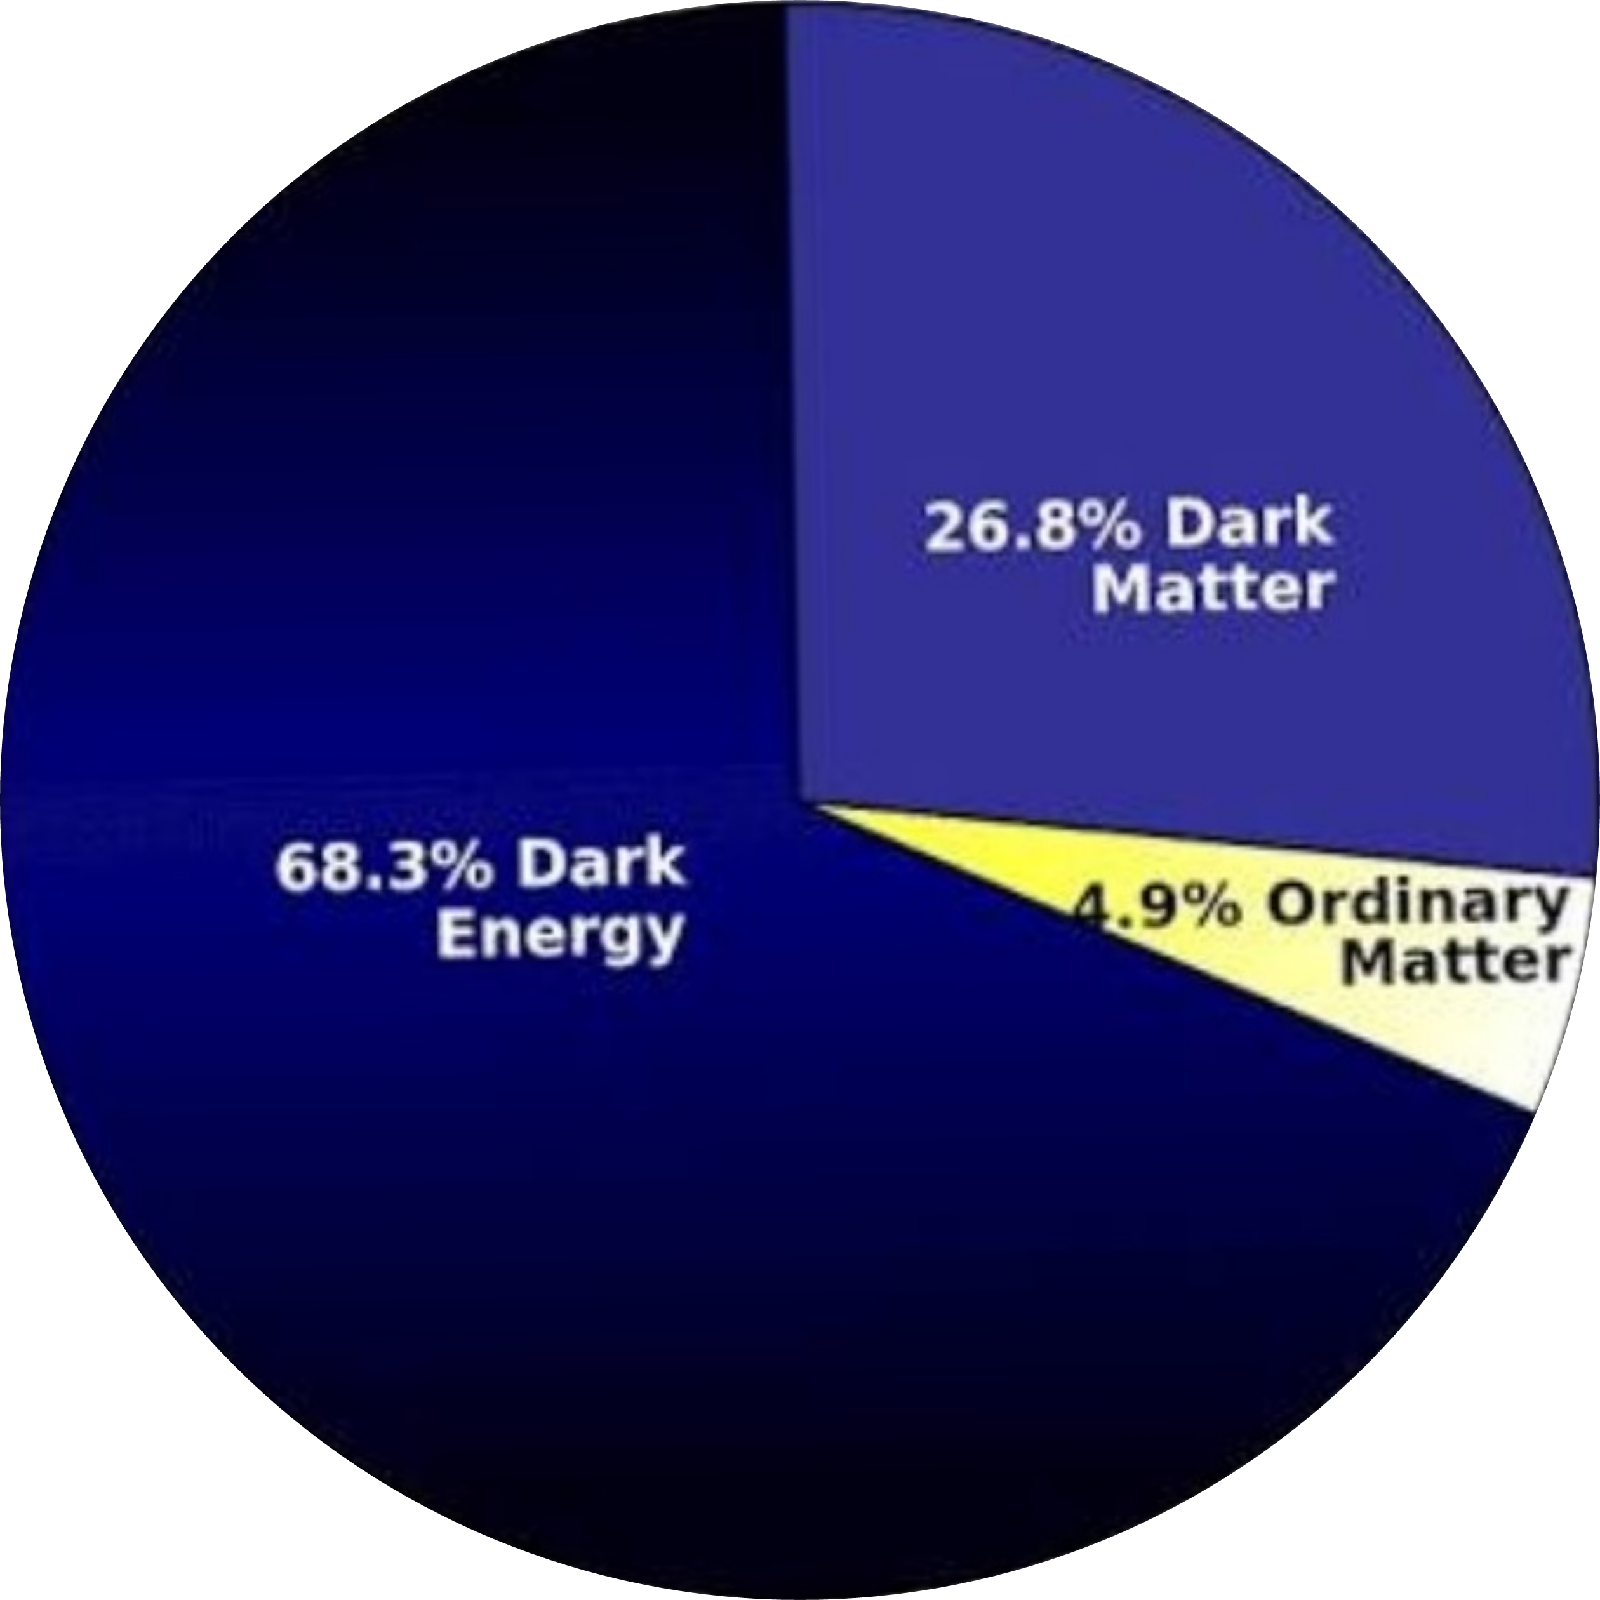 Dark energy percentage